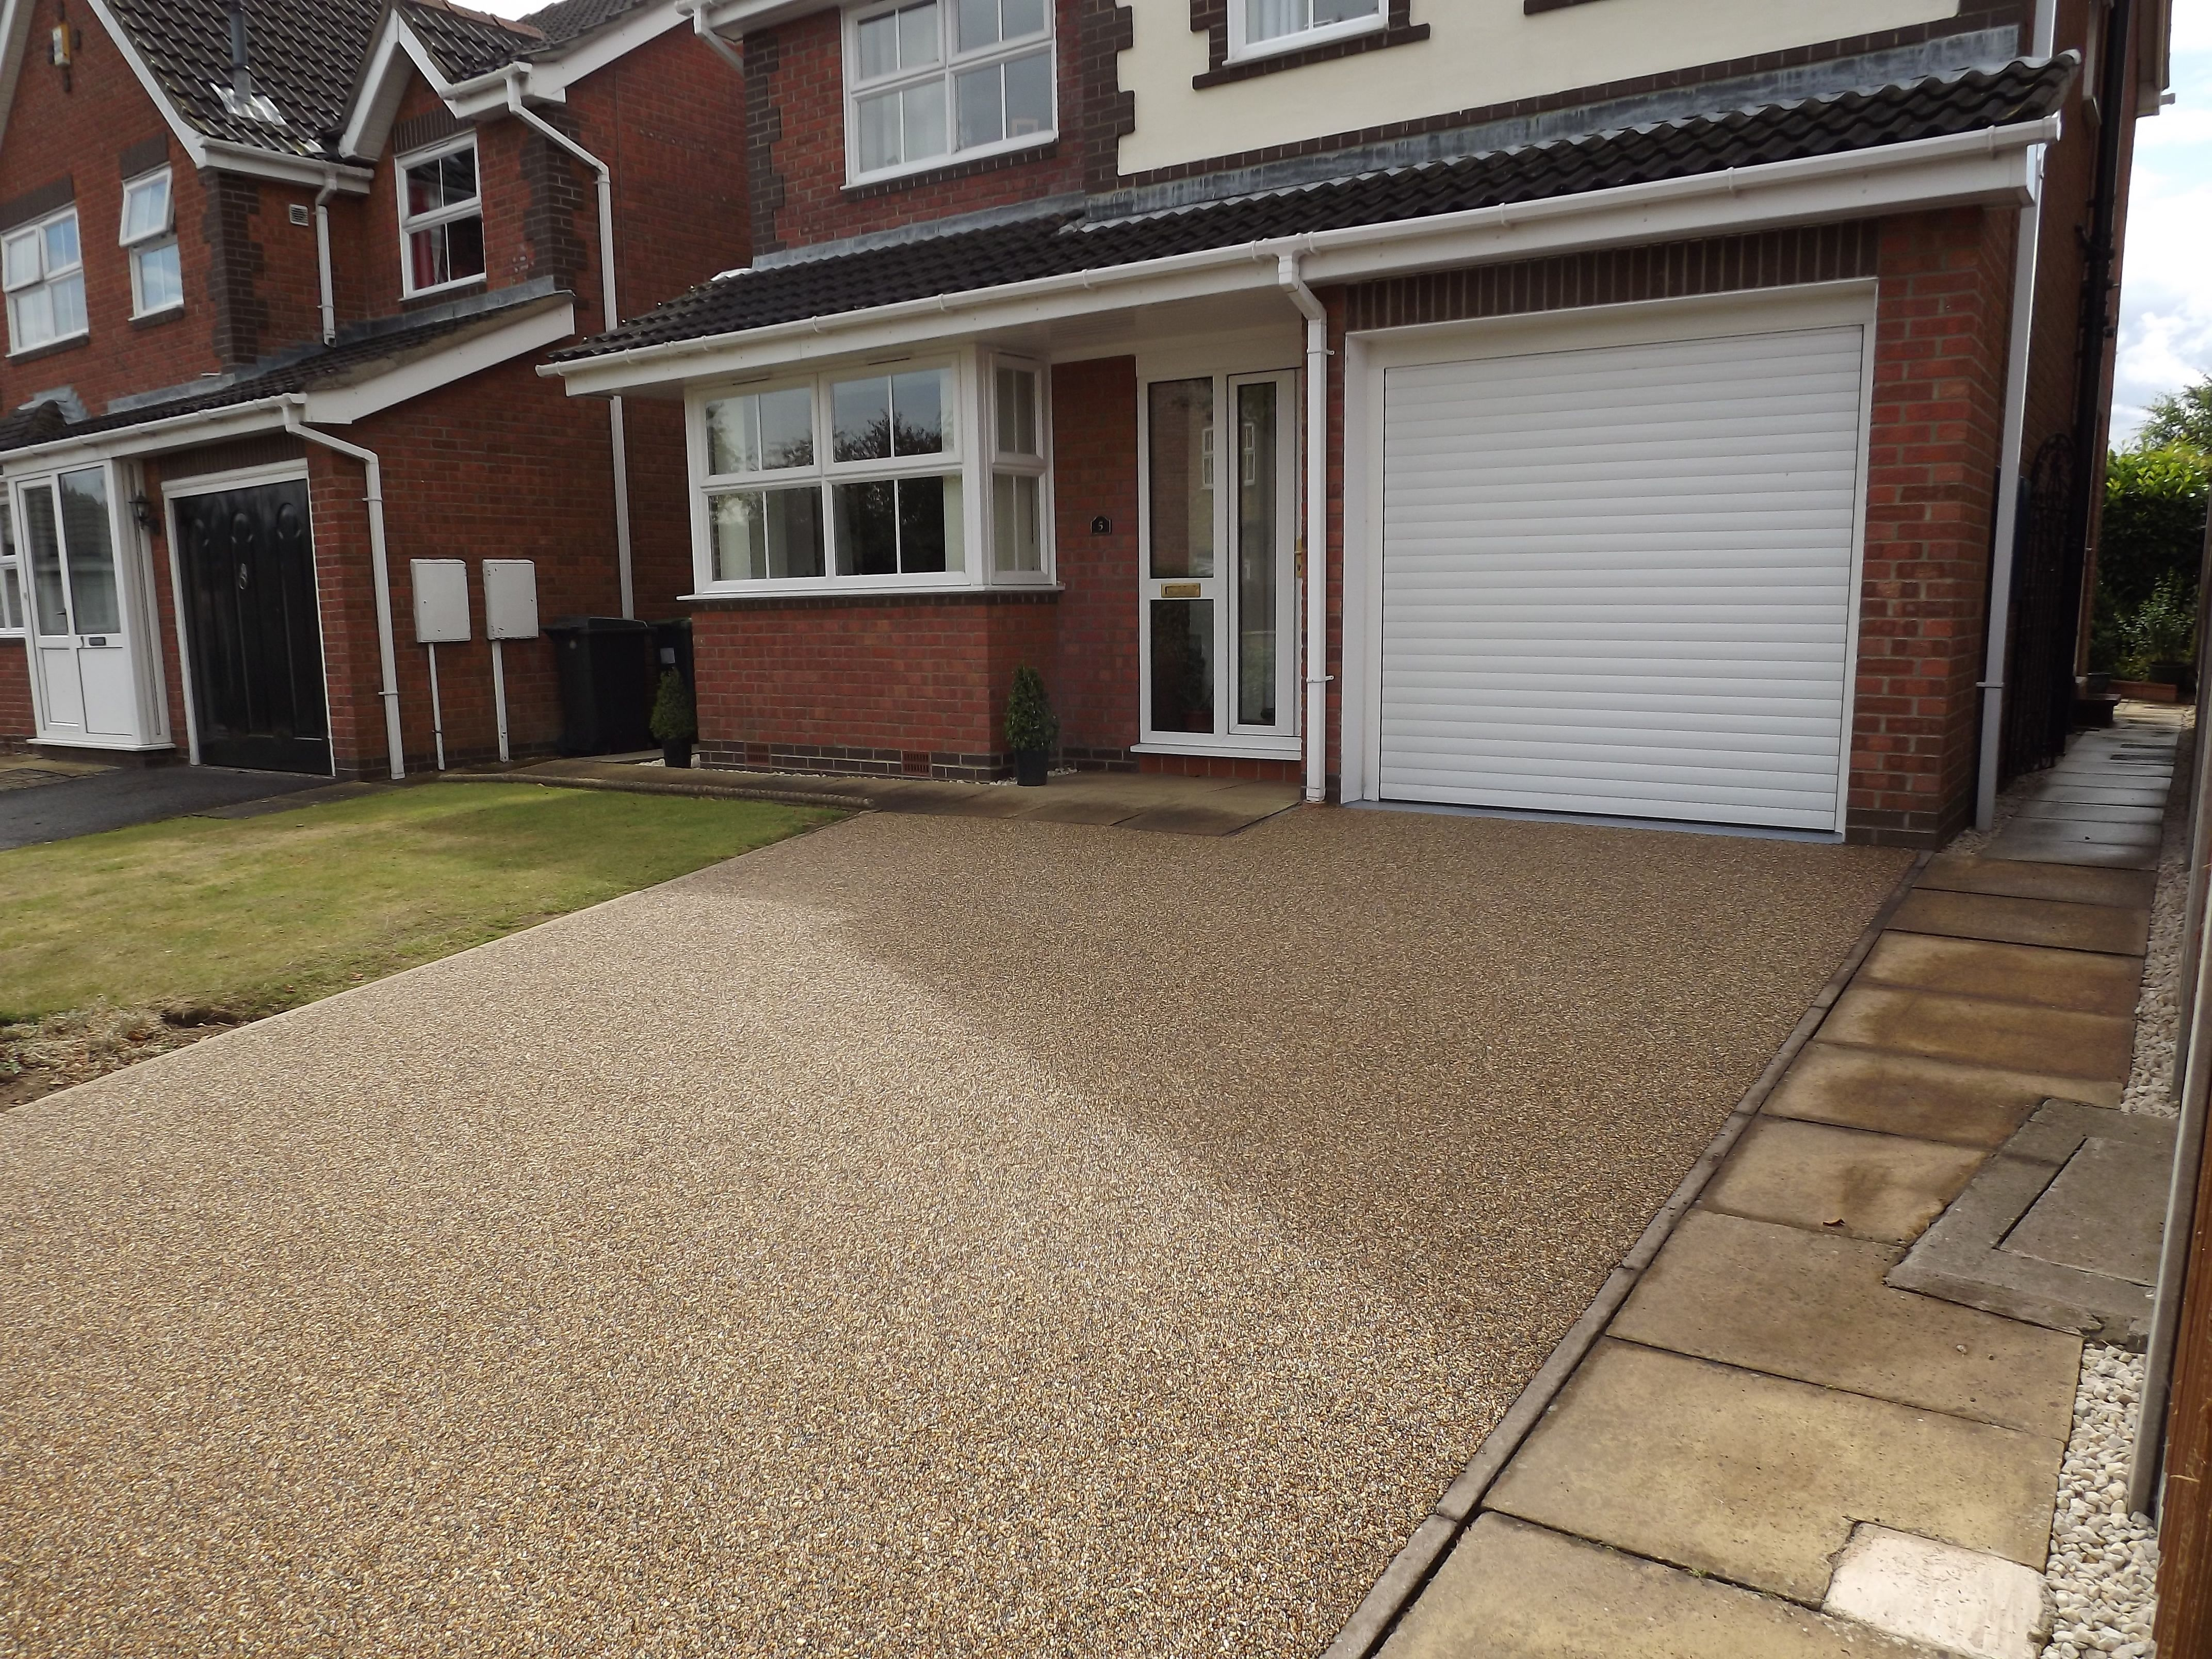 5 winchester way, ng34 8wh (britney bronze 2-5mm)